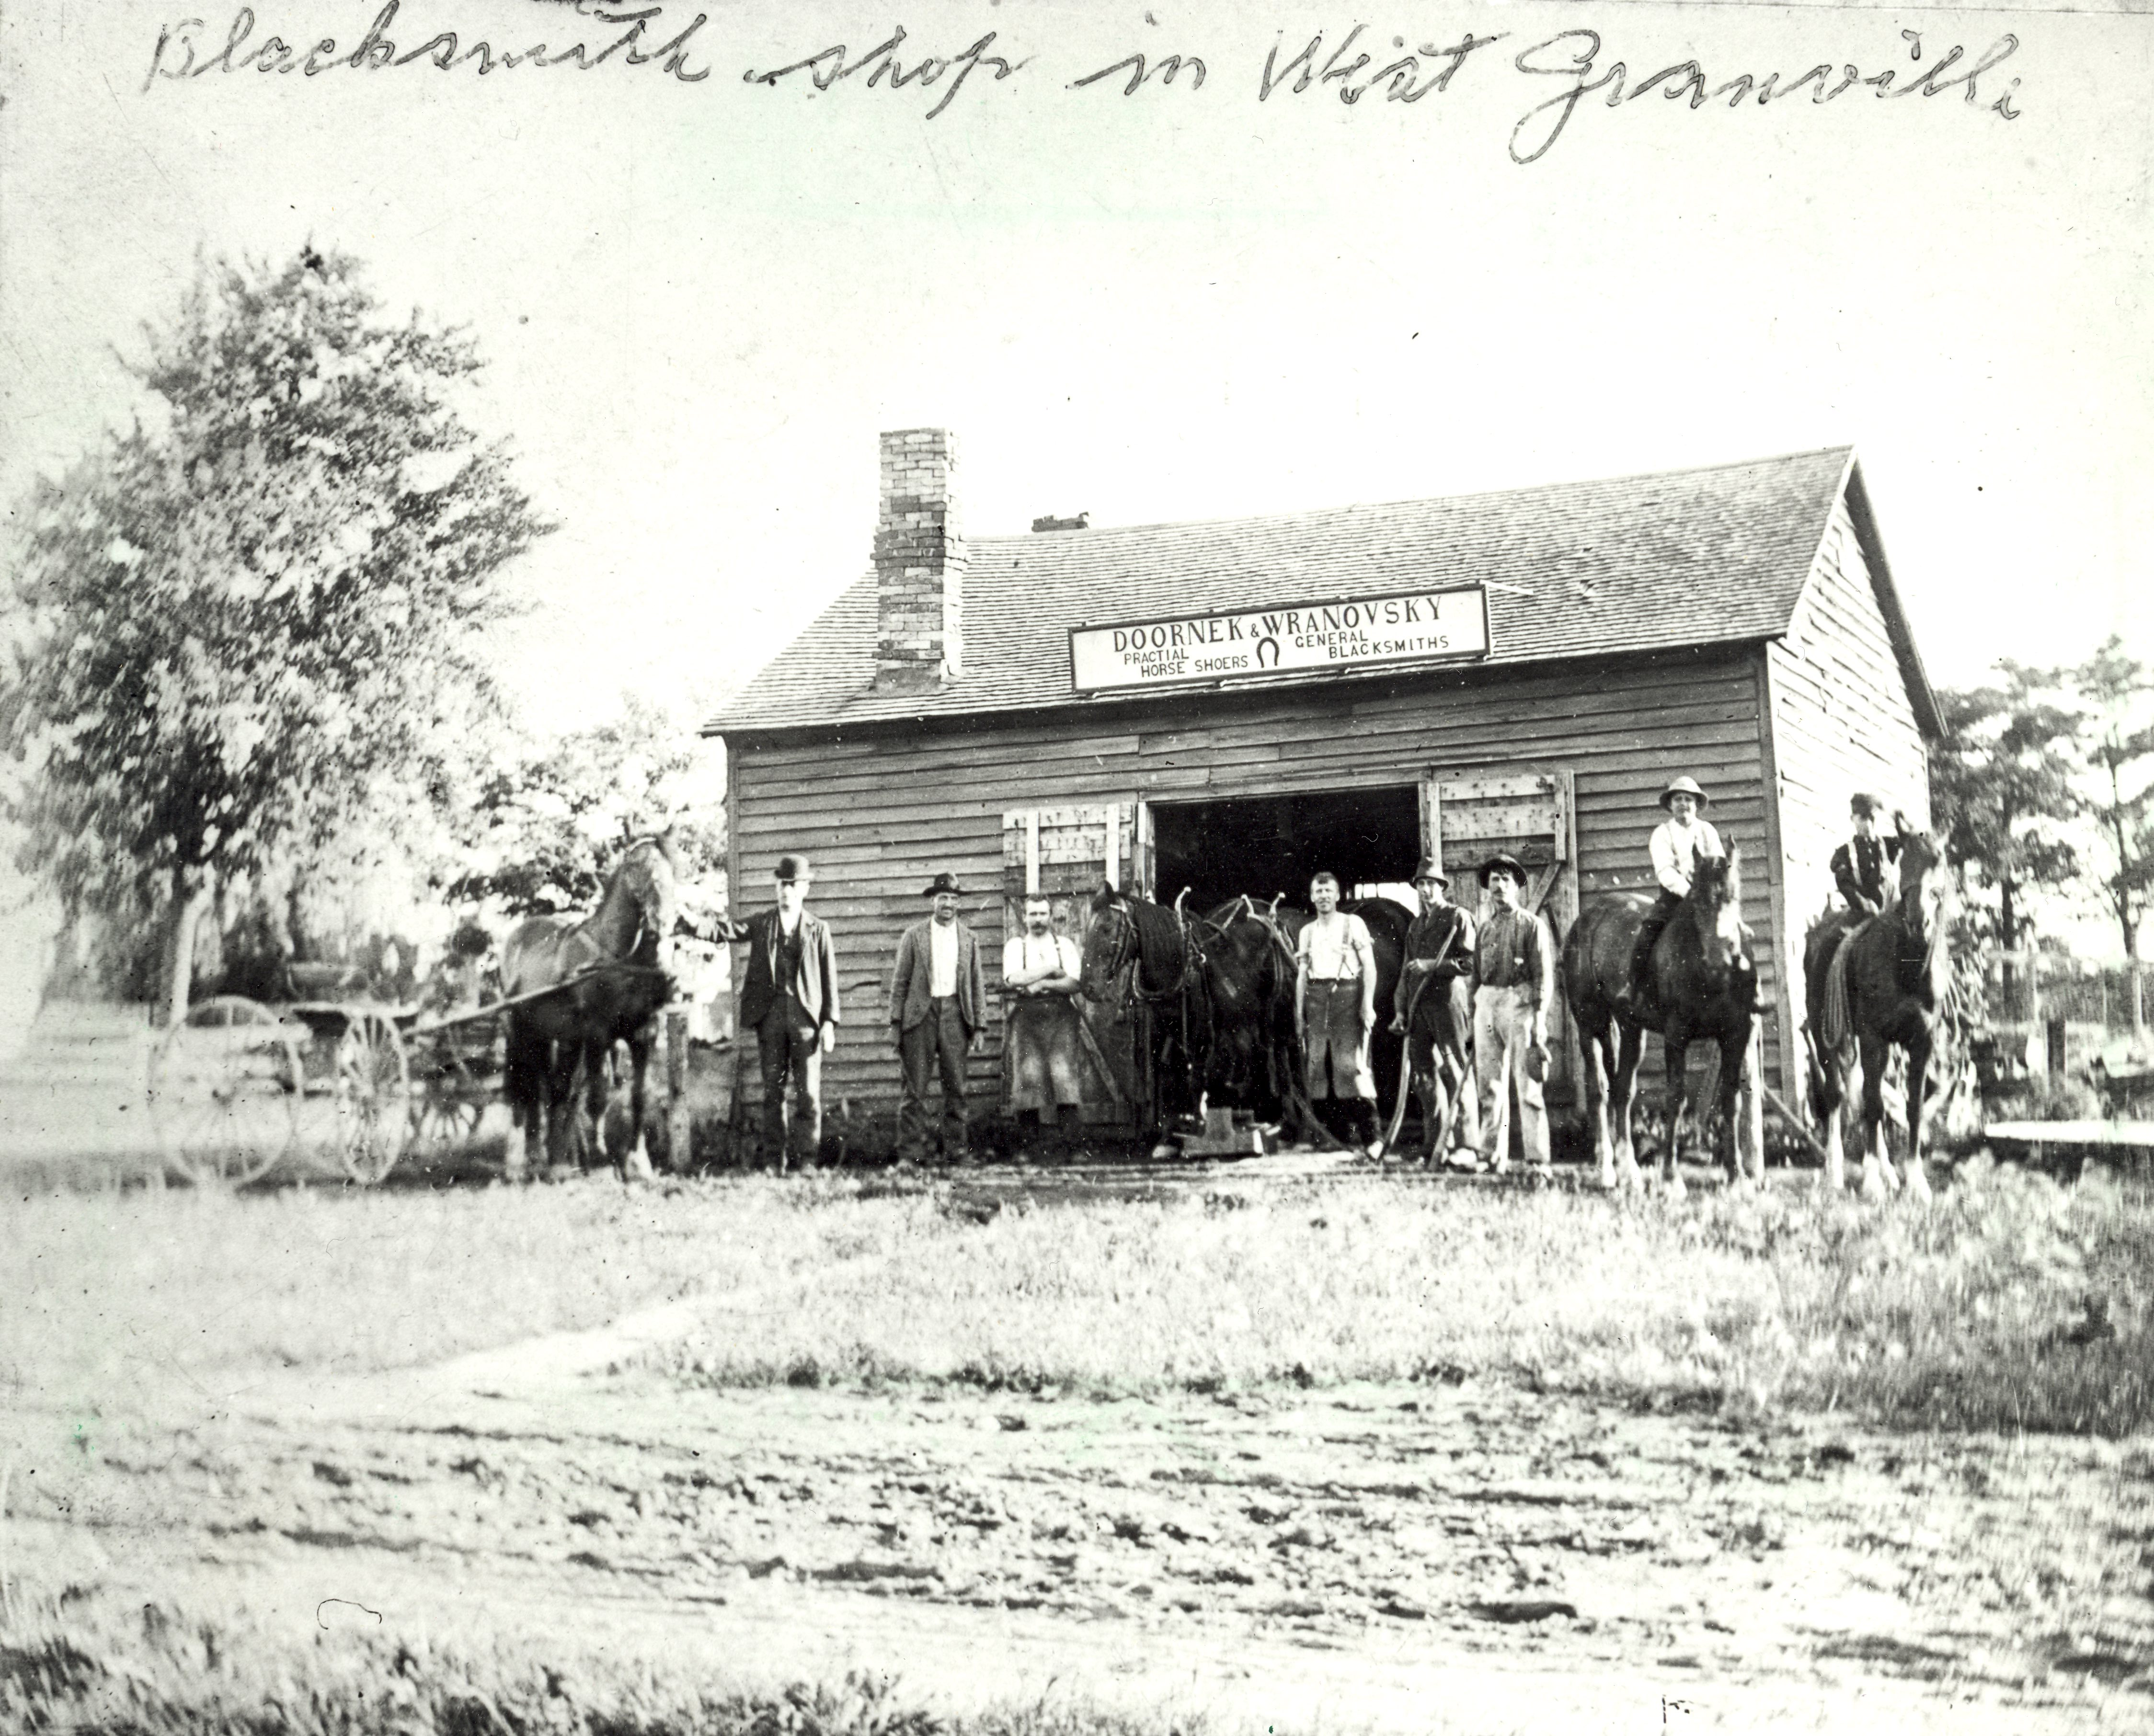 <table class=&quot;lightbox&quot;><tr><td colspan=2 class=&quot;lightbox-title&quot;>Granville Blacksmiths</td></tr><tr><td colspan=2 class=&quot;lightbox-caption&quot;>An 1898 photograph of the Doornek &amp; Wranovsky Blacksmith shop in Granville.</td></tr><tr><td colspan=2 class=&quot;lightbox-spacer&quot;></td></tr><tr class=&quot;lightbox-detail&quot;><td class=&quot;cell-title&quot;>Source: </td><td class=&quot;cell-value&quot;>From the Historic Photo Collection of the Milwaukee Public Library. Reprinted with permission.<br /><a href=&quot;http://content.mpl.org/cdm/singleitem/collection/HstoricPho/id/1306/rec/1&quot; target=&quot;_blank&quot;>Milwaukee Public Library</a></td></tr><tr class=&quot;filler-row&quot;><td colspan=2>&nbsp;</td></tr></table>